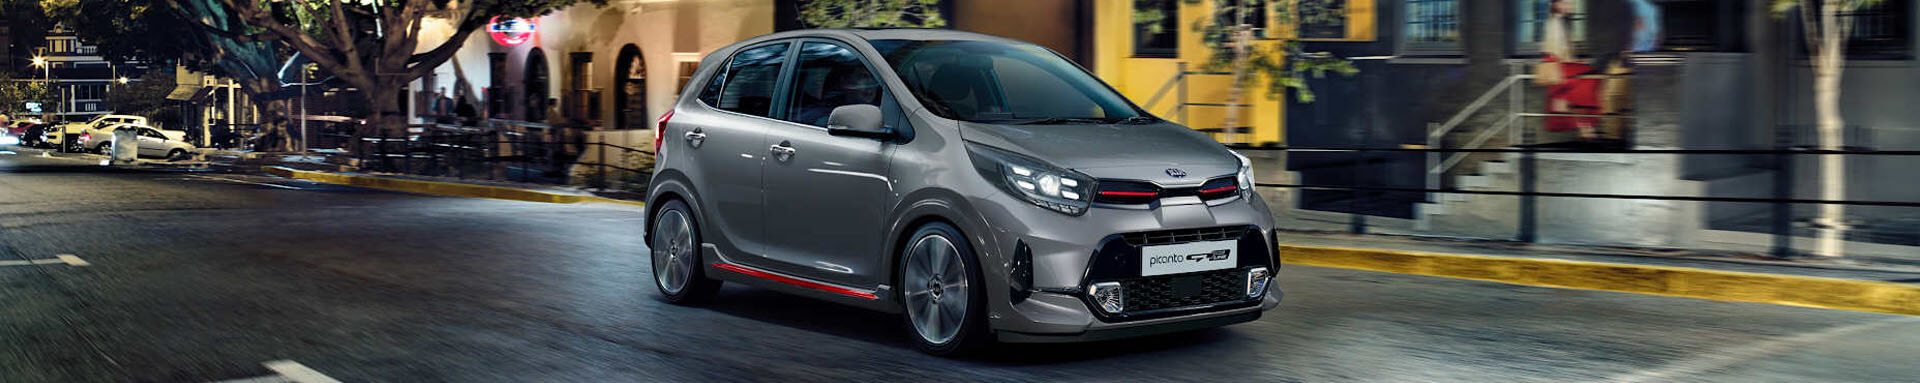 Winter & Taylor Kia Picanto